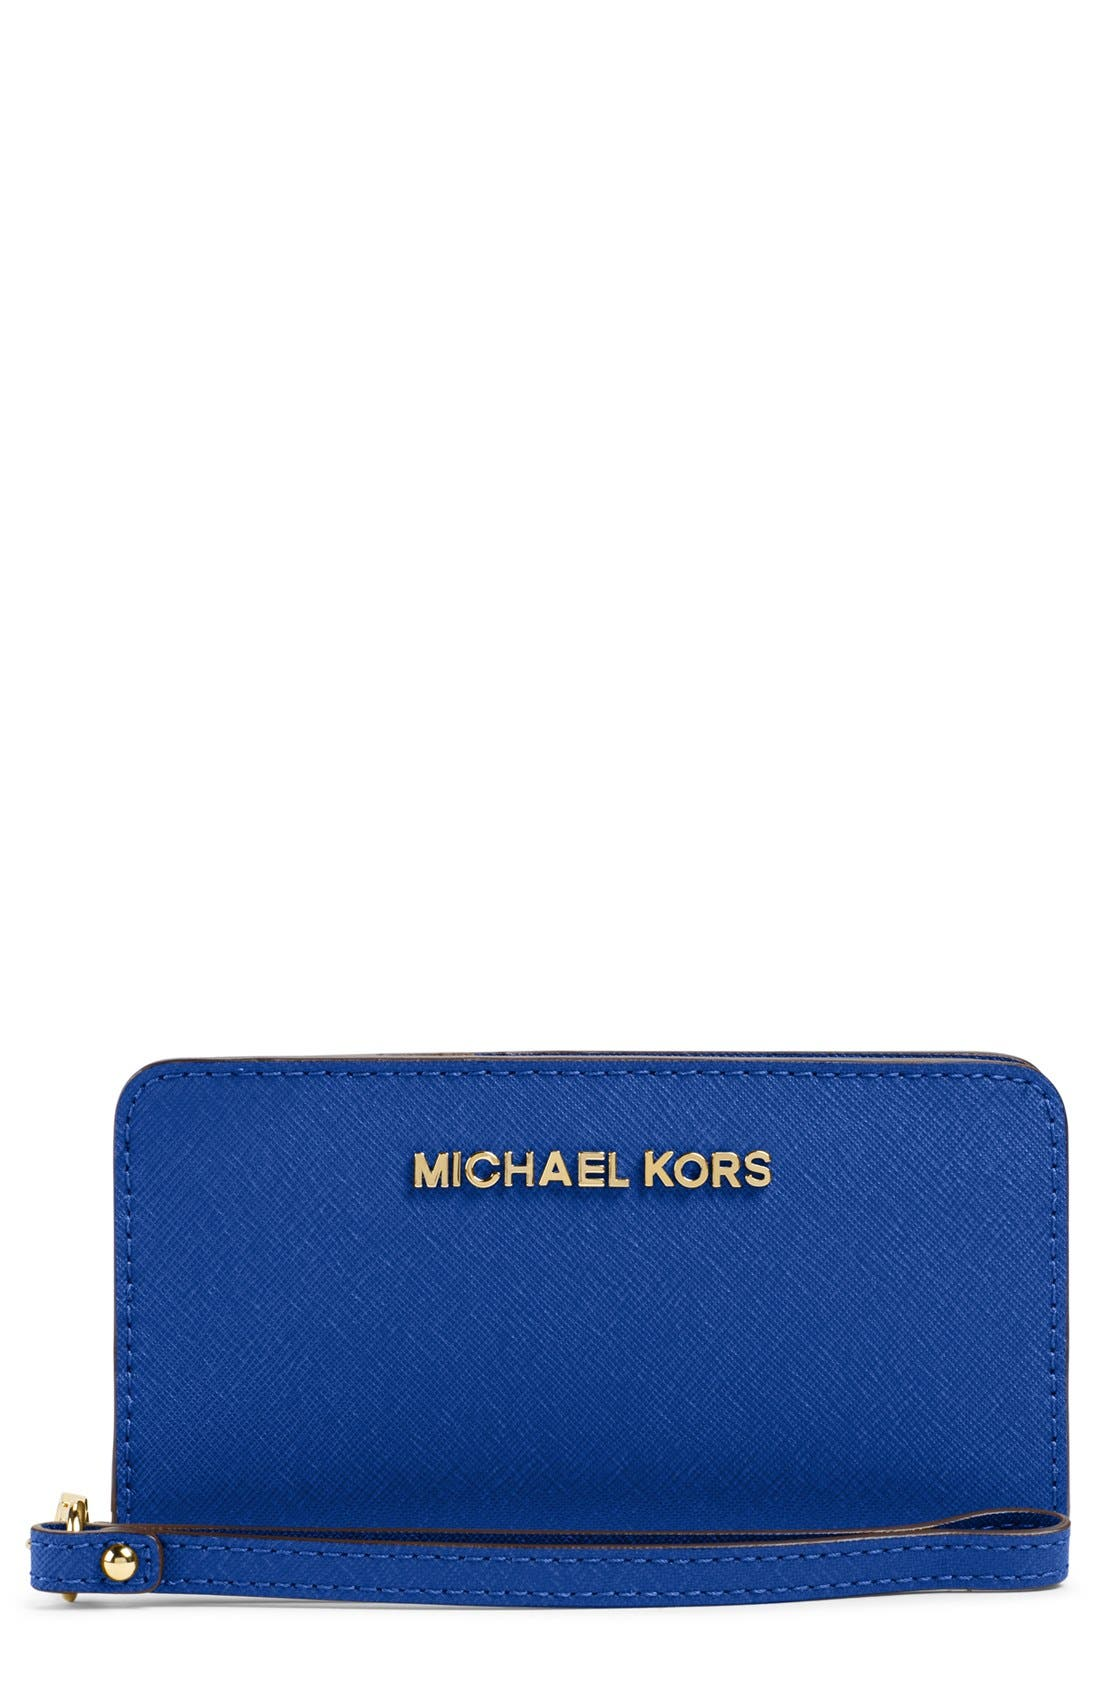 Alternate Image 1 Selected - MICHAEL Michael Kors Saffiano Leather Phone Wallet